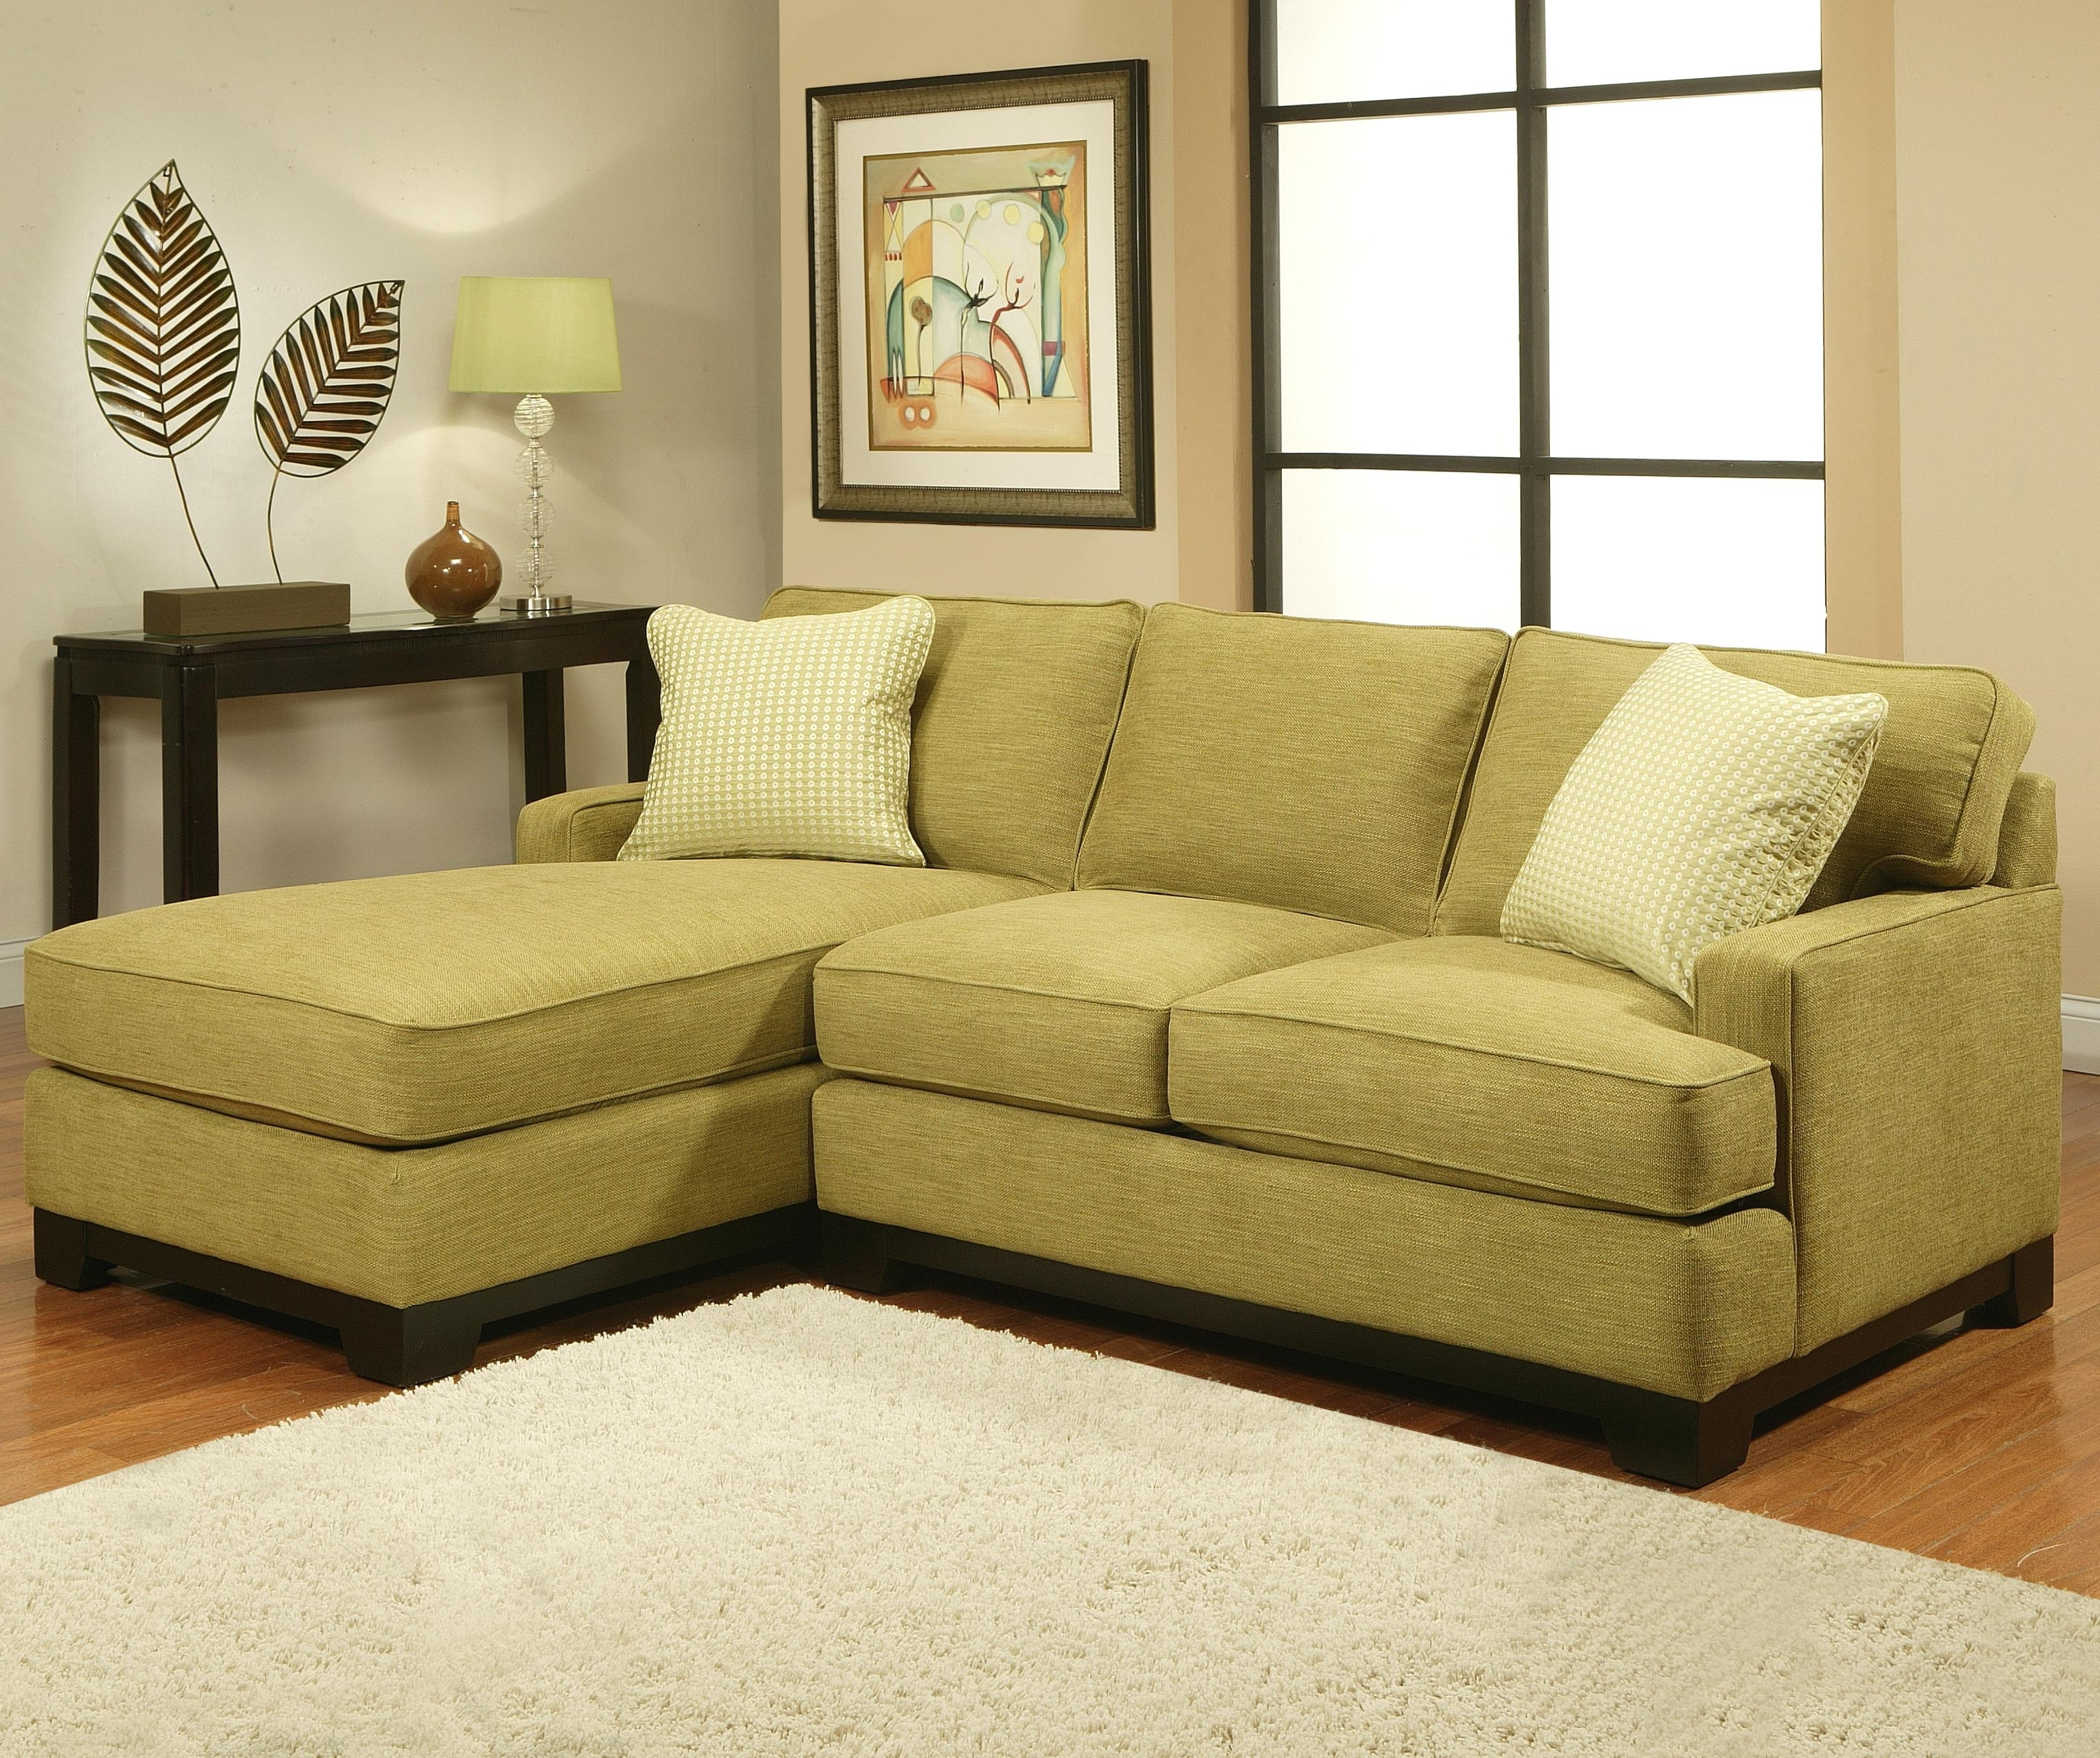 Jonathan Sofas intended for Fashionable Jonathan Louis Choices - Kronos Contemporary Sectional Sofa With